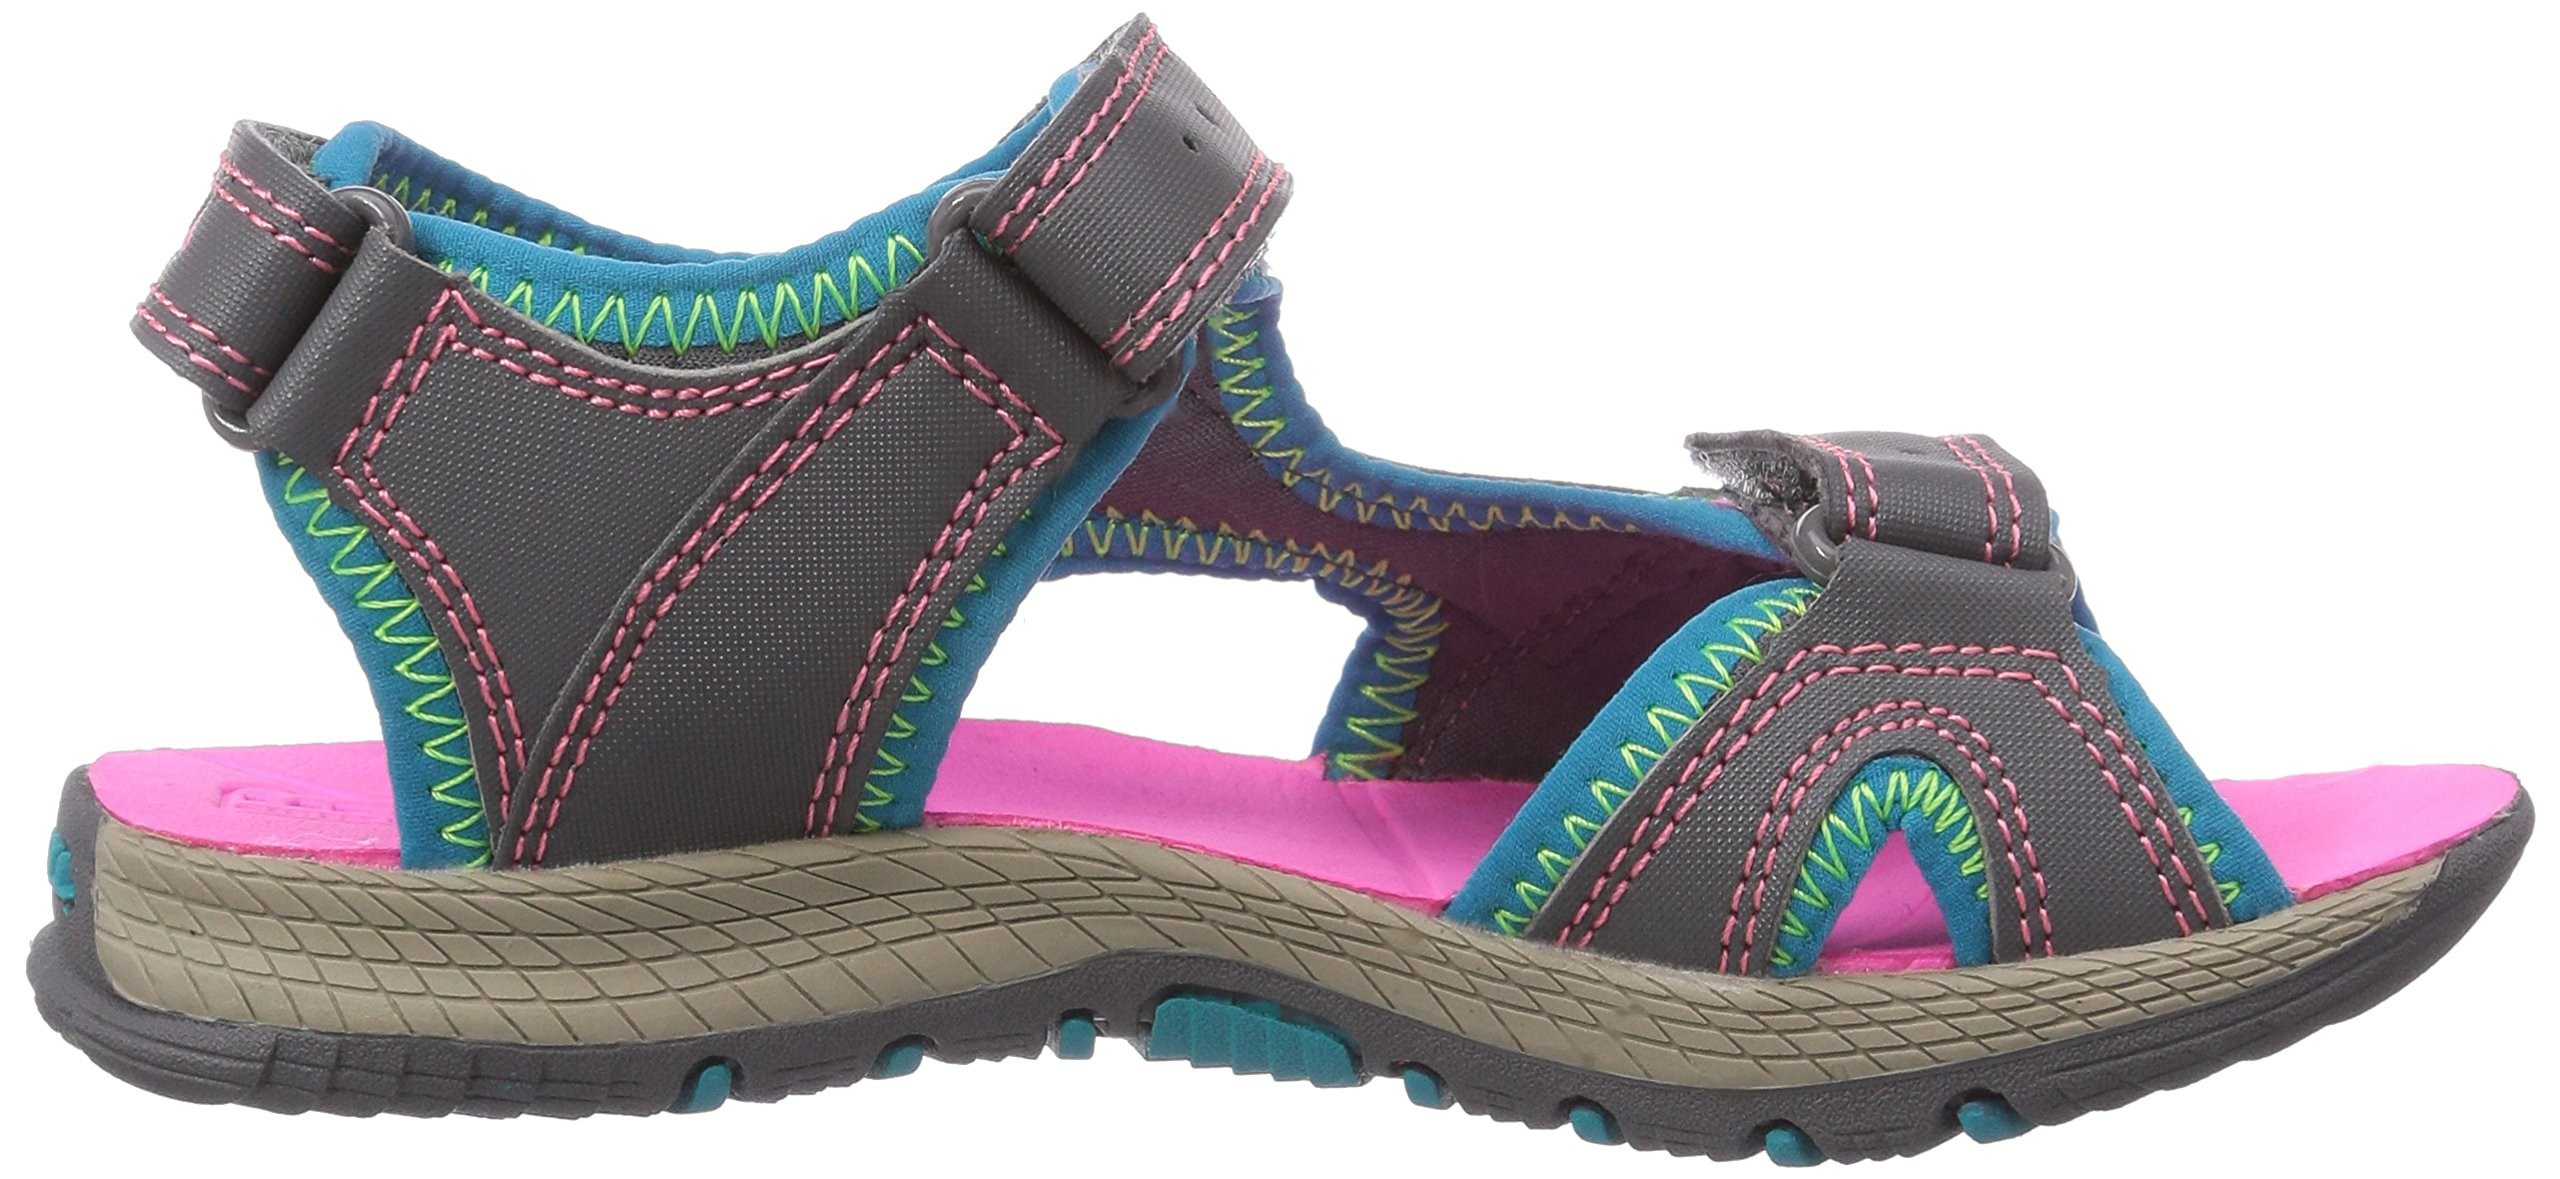 Merrell Panther Athletic Water Sandal , Blue/Pink/Green, 11 M US Little Kid by Merrell (Image #6)